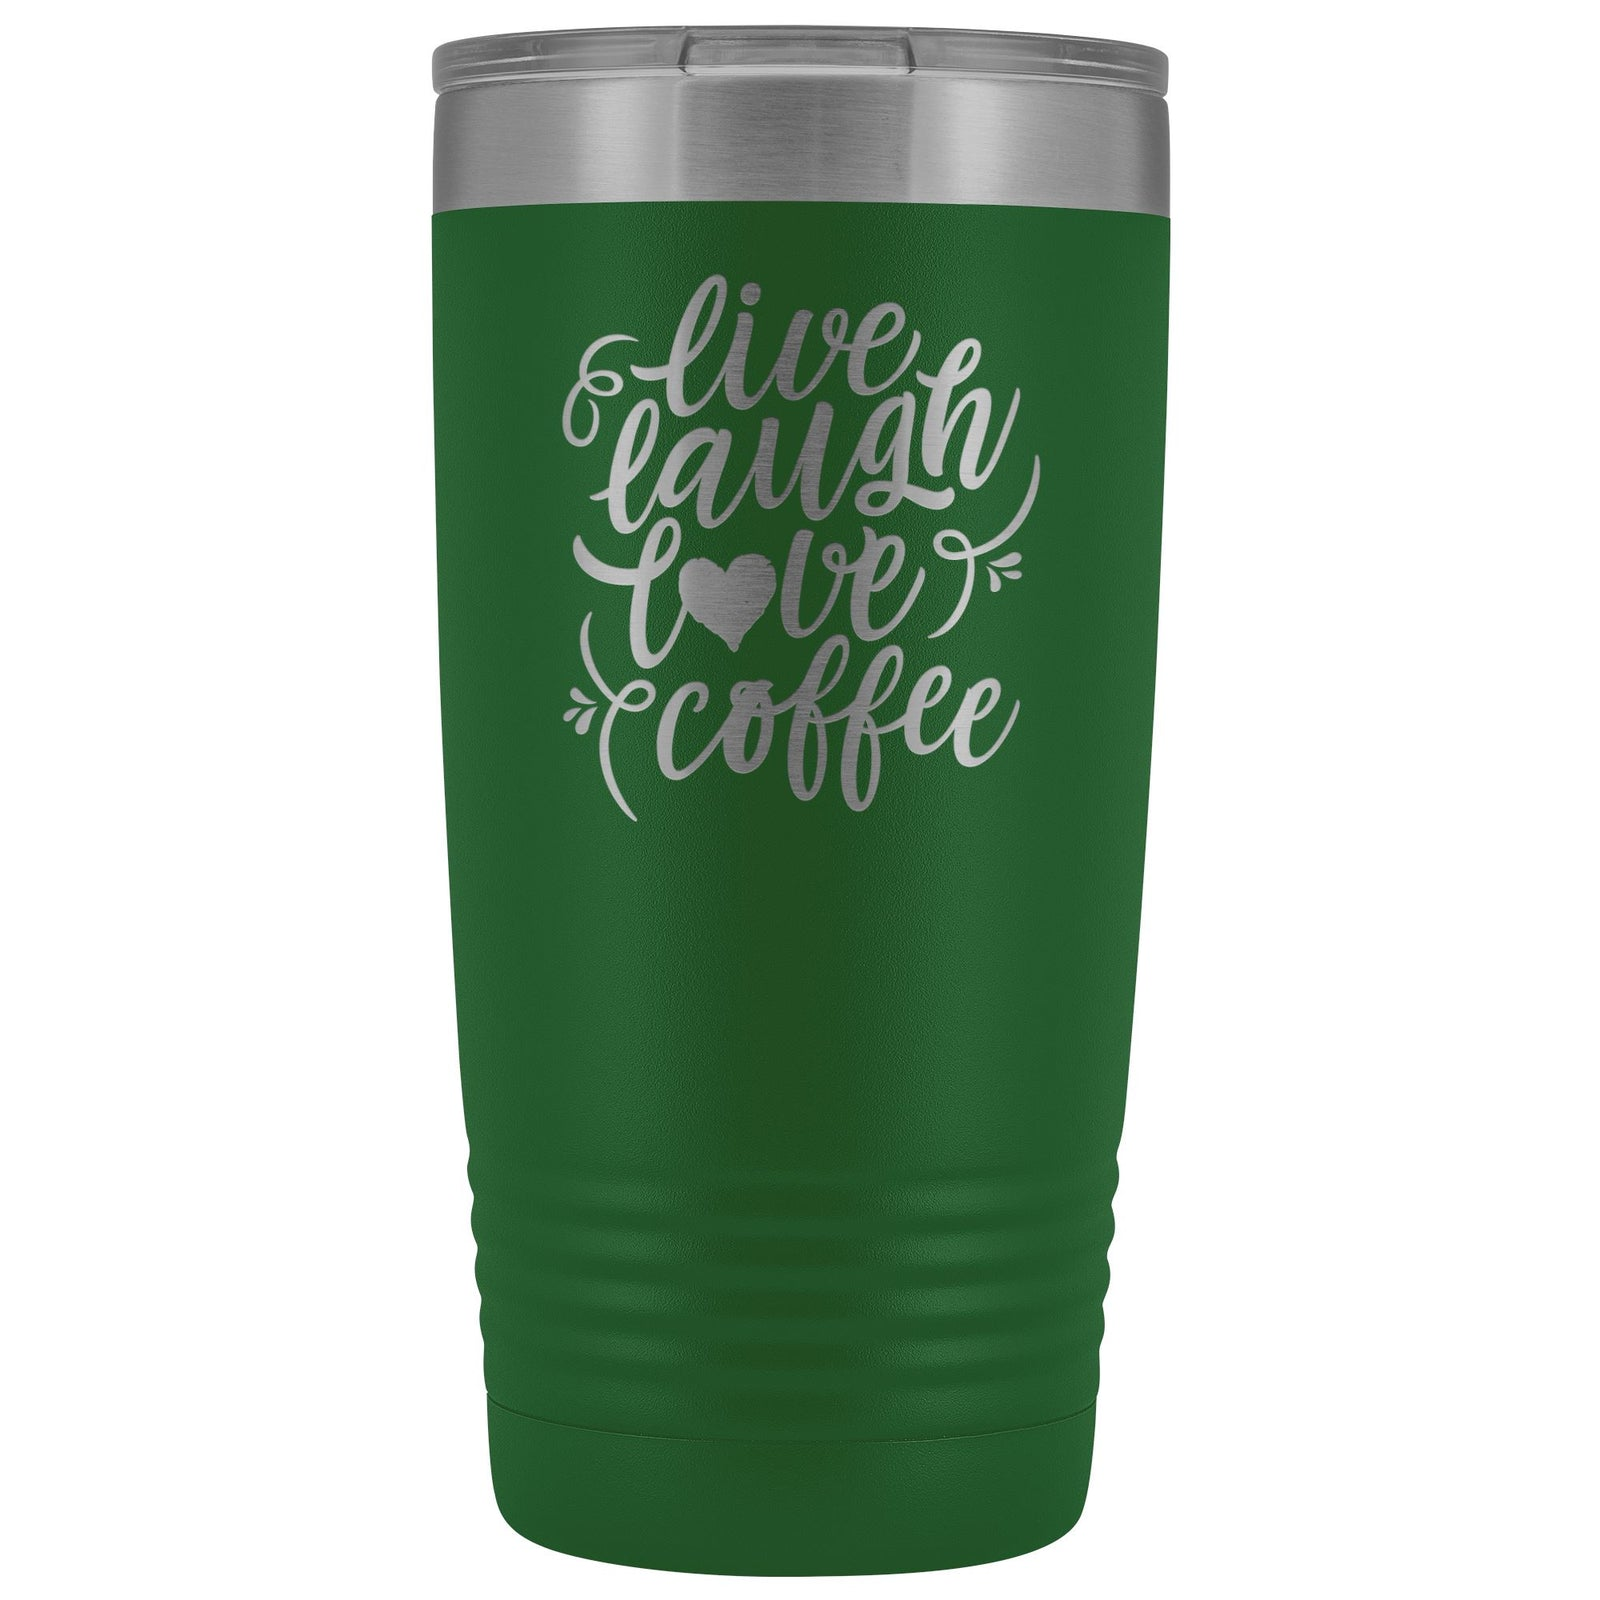 Live, Laugh, Love, Coffee • 15oz Insulated Coffee Tumbler Tumblers teelaunch Green